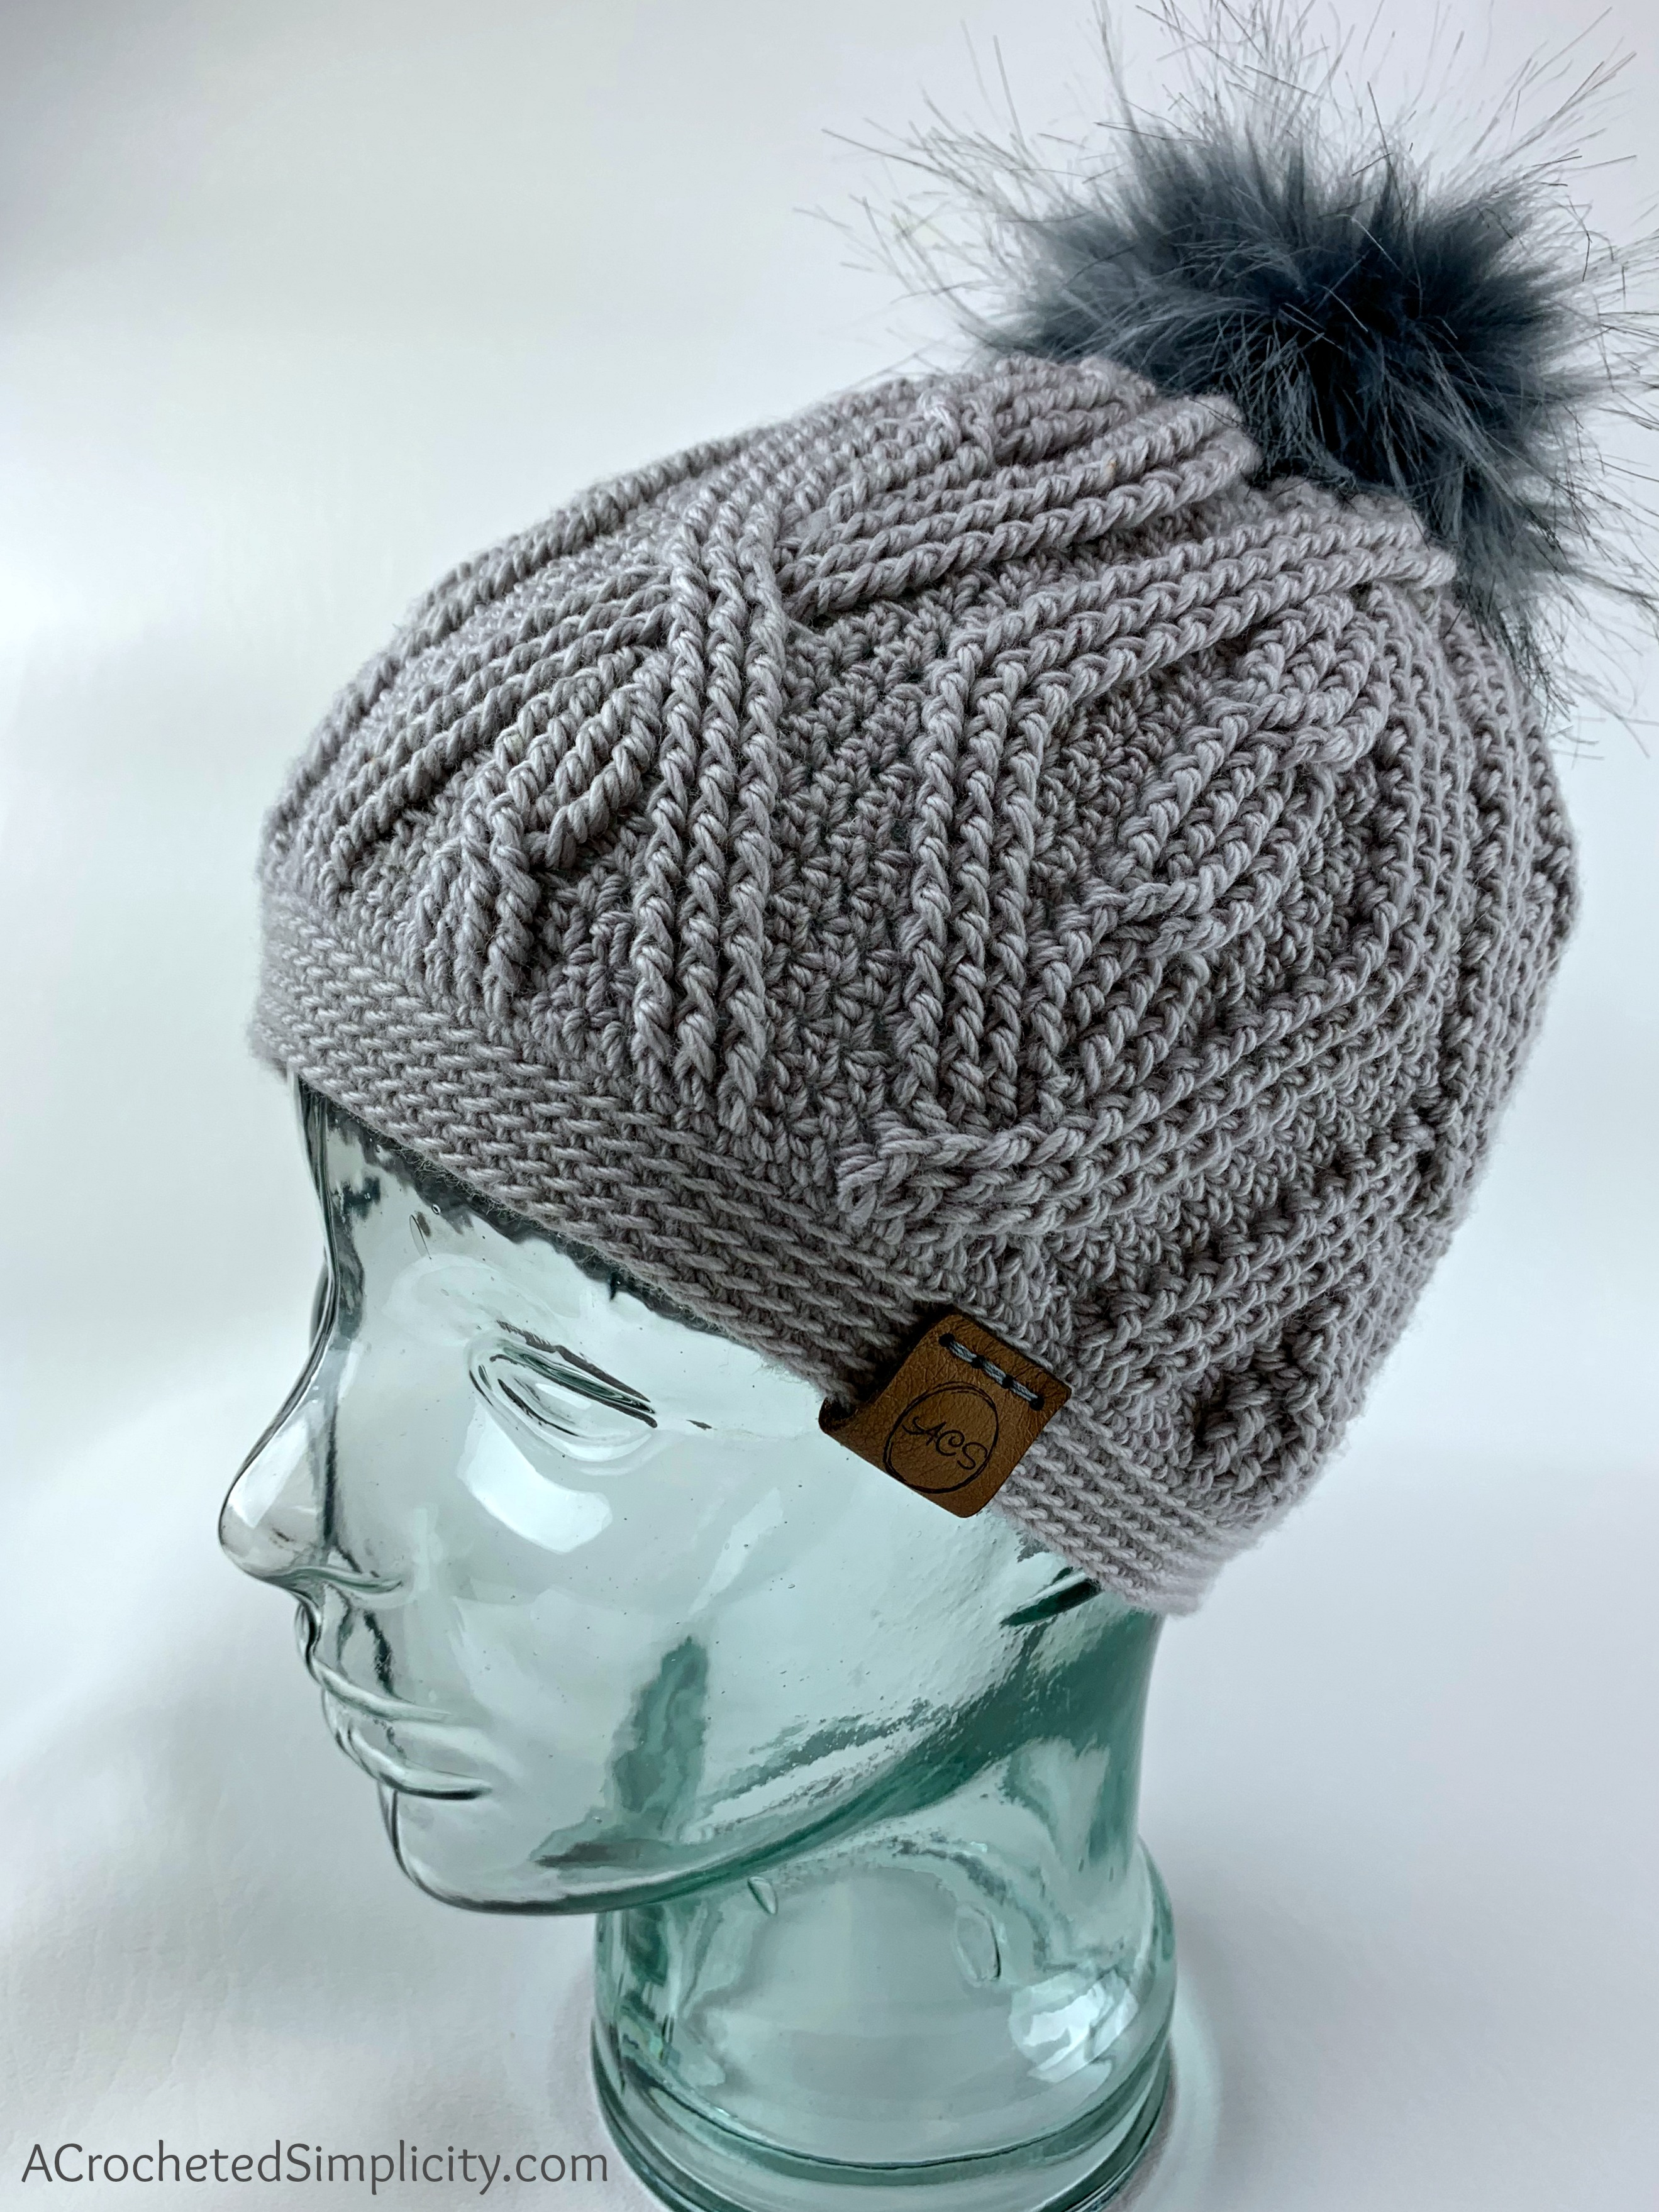 Free Crochet Pattern - Diamonds & Twists Cabled Beanie by A Crocheted Simplicity #freecrochetpattern #cabledbeanie #crochetcables #crochetcablepattern #crochetbeaniepattern #crochethatpattern #cabledhatpattern #crochet